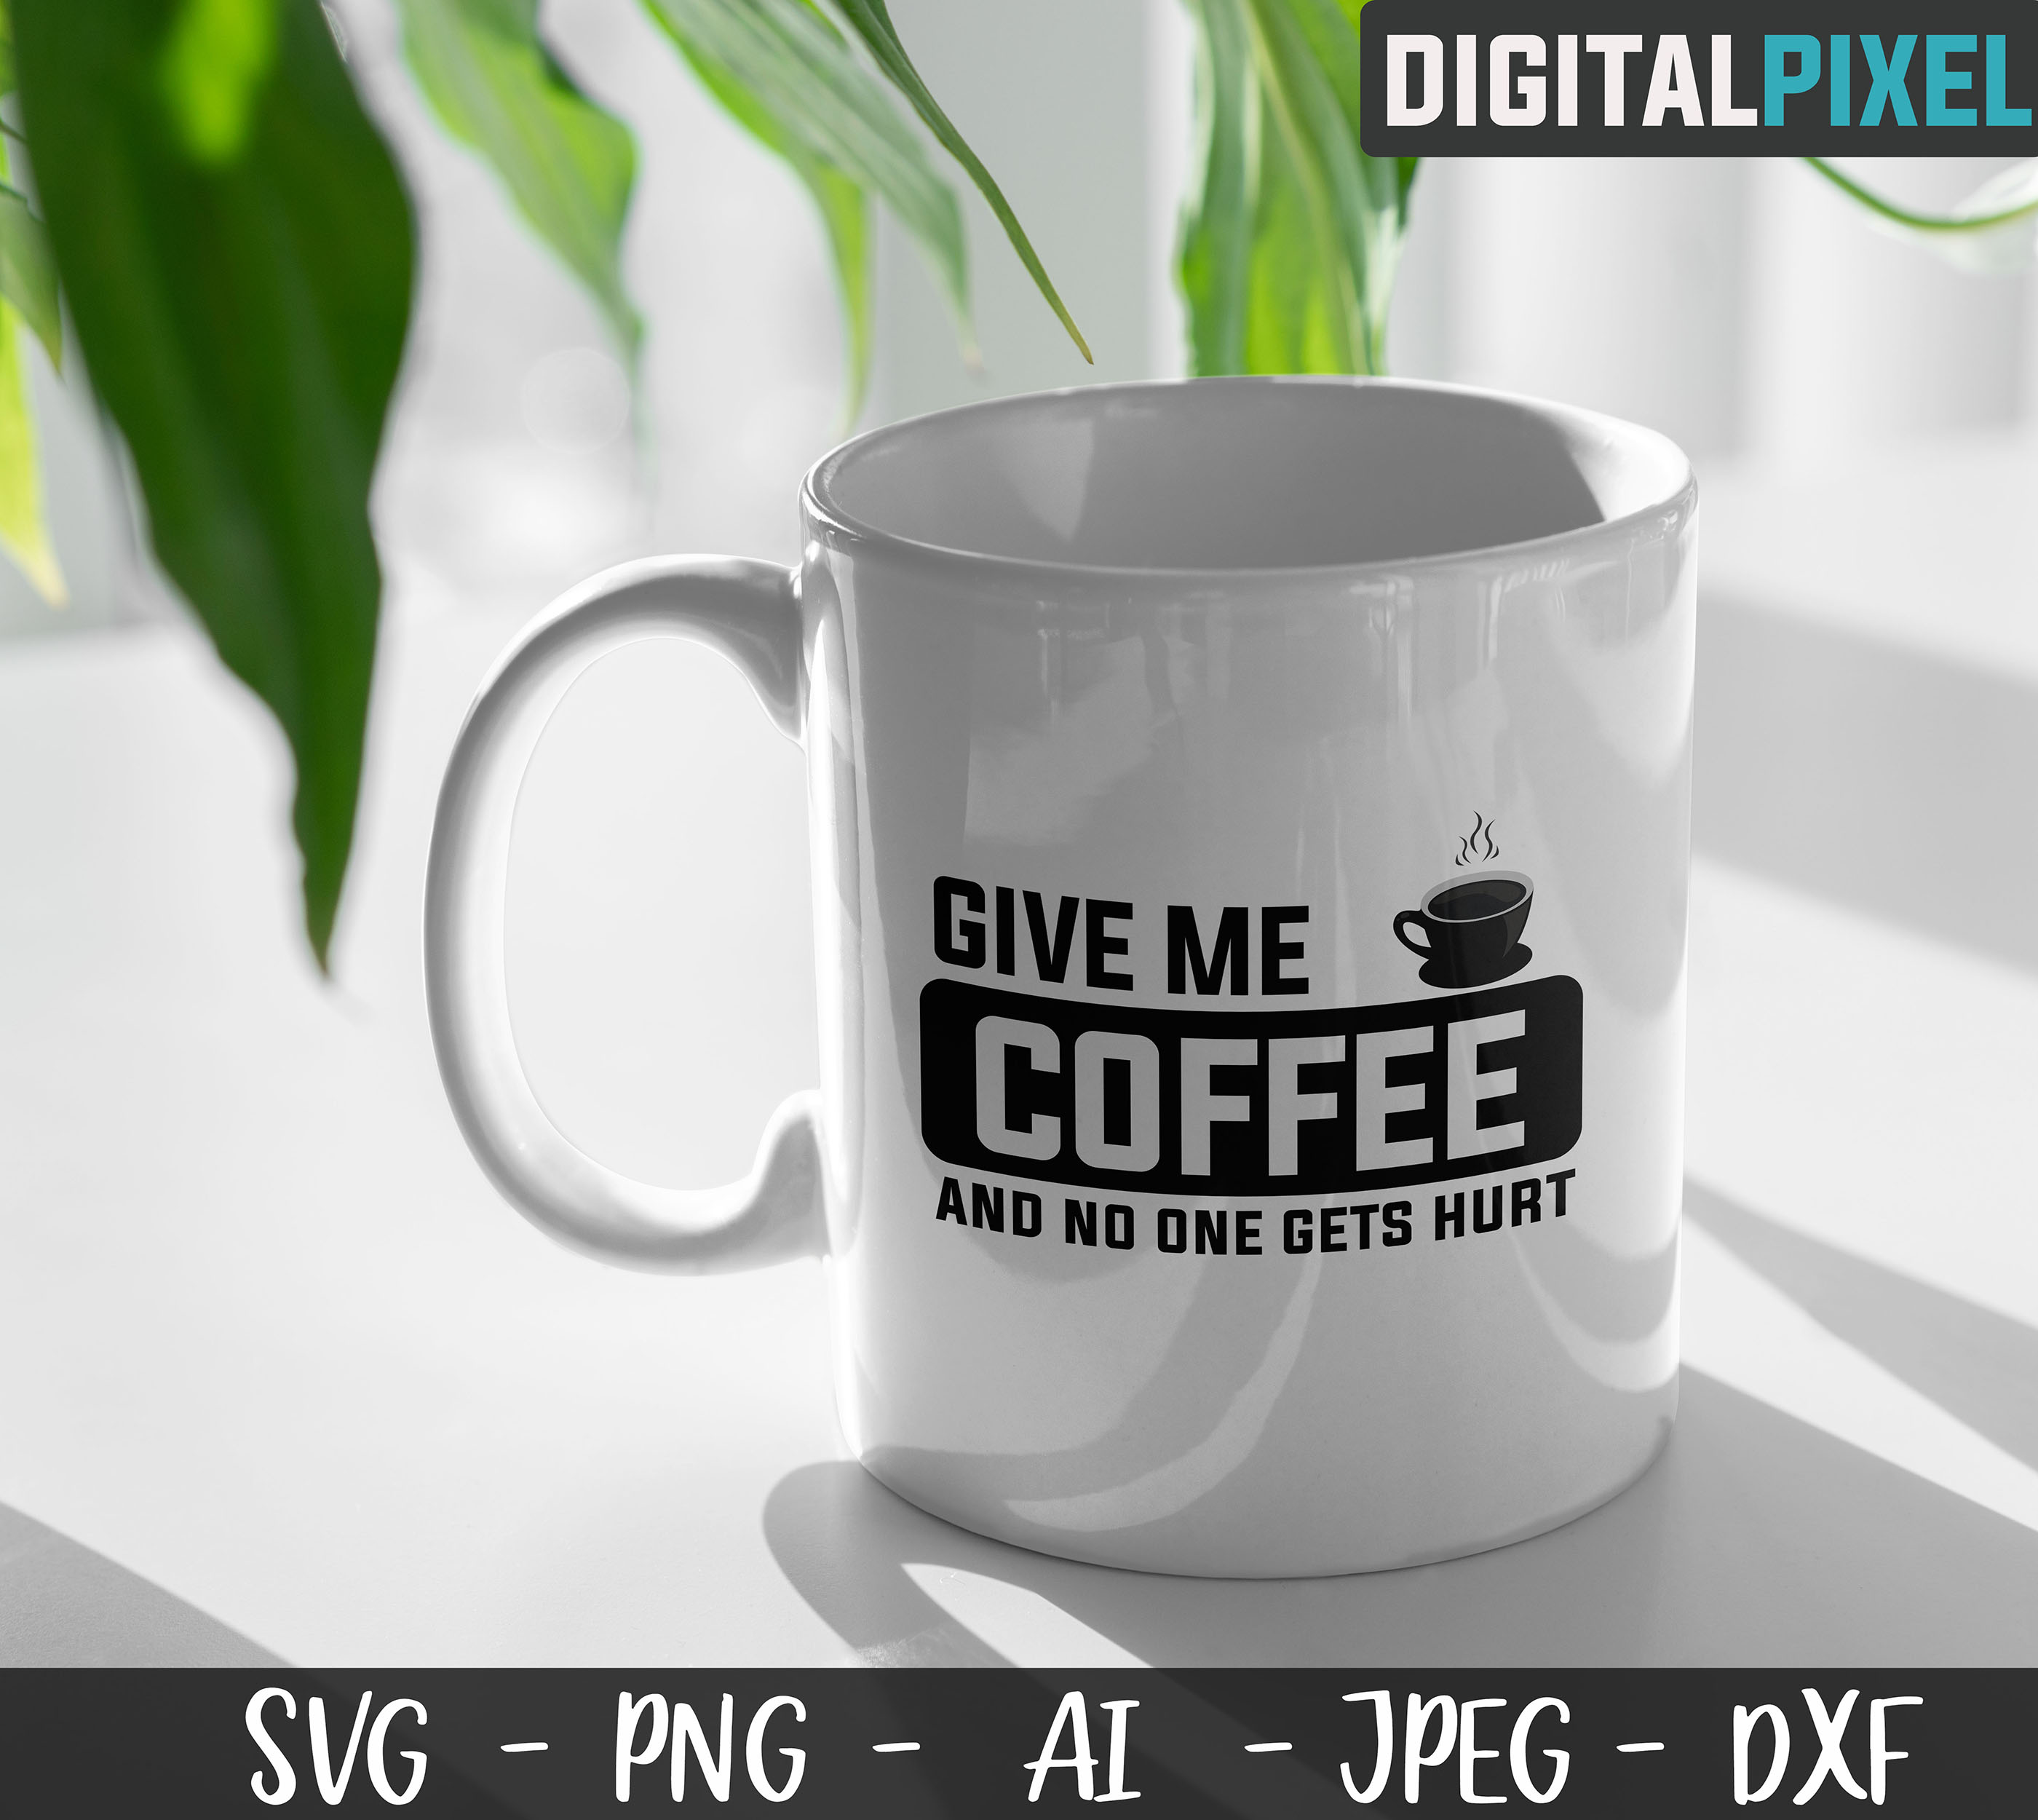 Coffee Bundle SVG PNG JPEG DXF Circut Cut Coffee Crafters example image 2